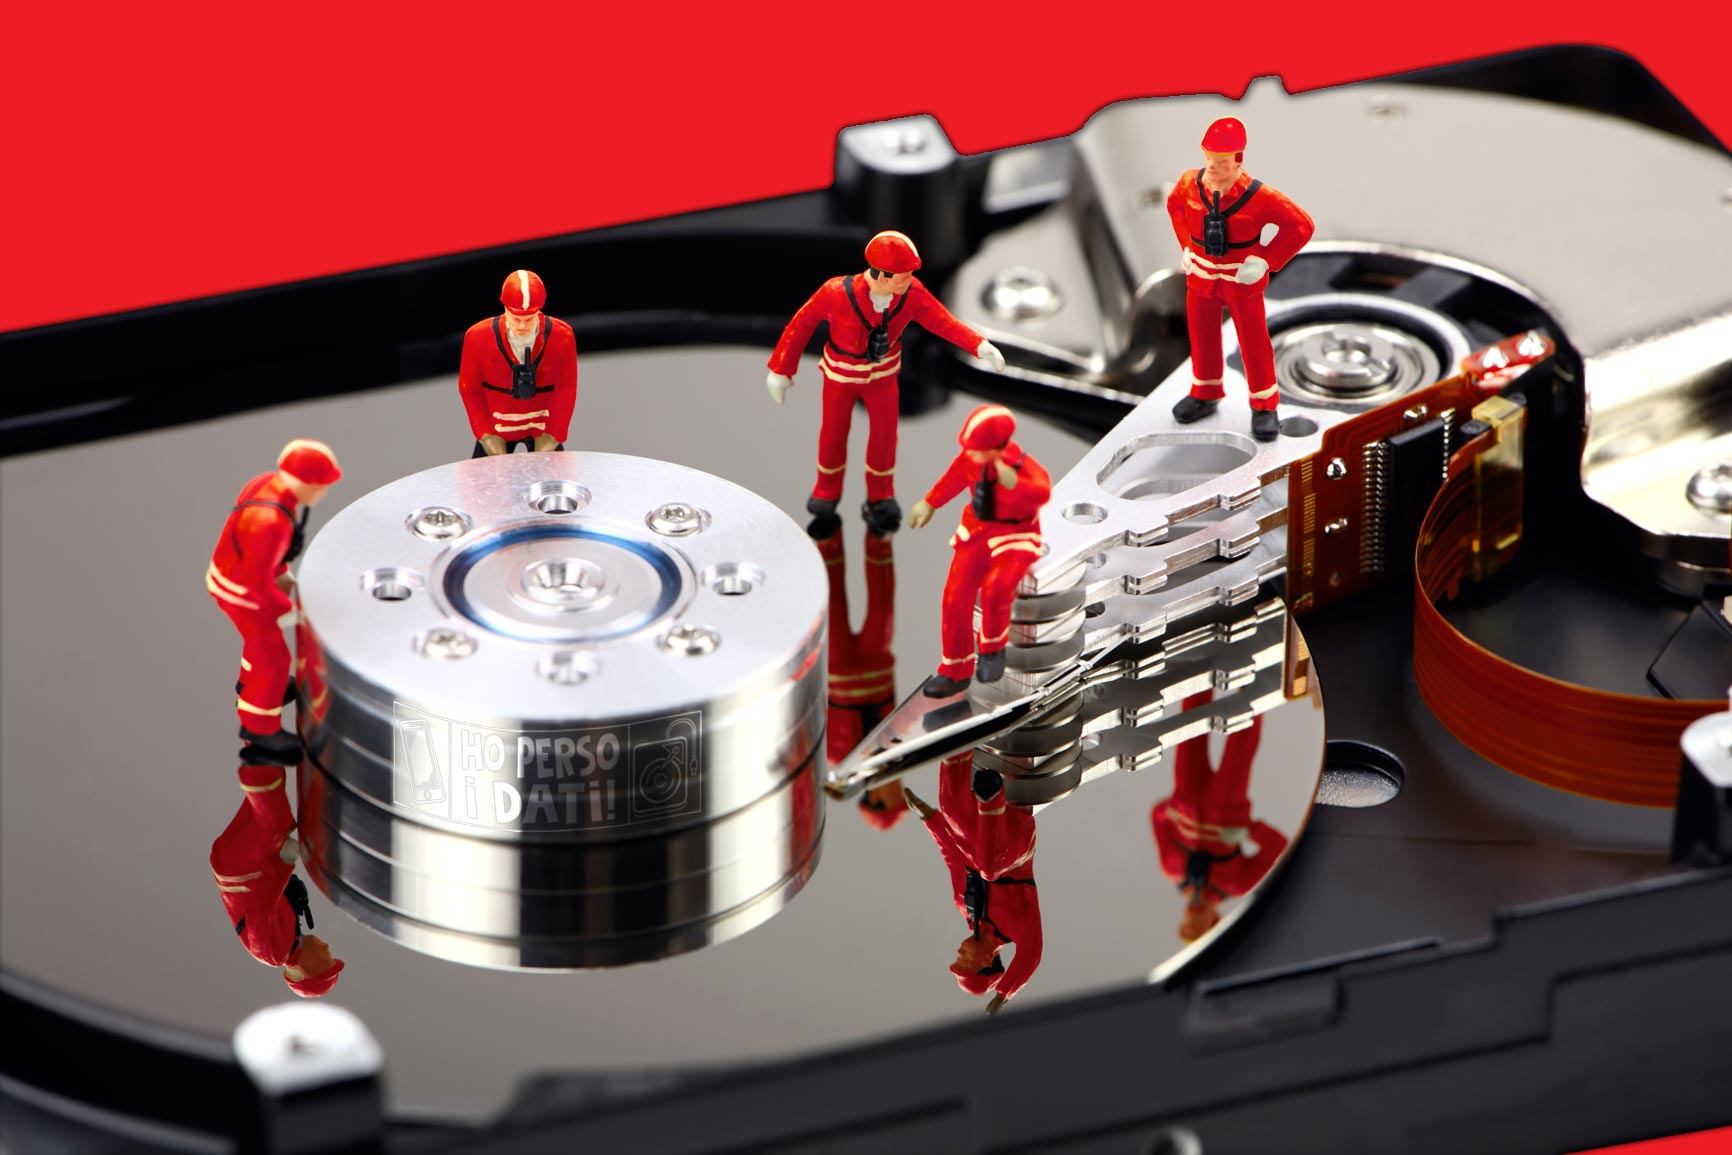 hopersoidati.it - Recupero Dati da qualsiasi supporto - Data Recovery di tutti i vostri files persi o cancellati per errore